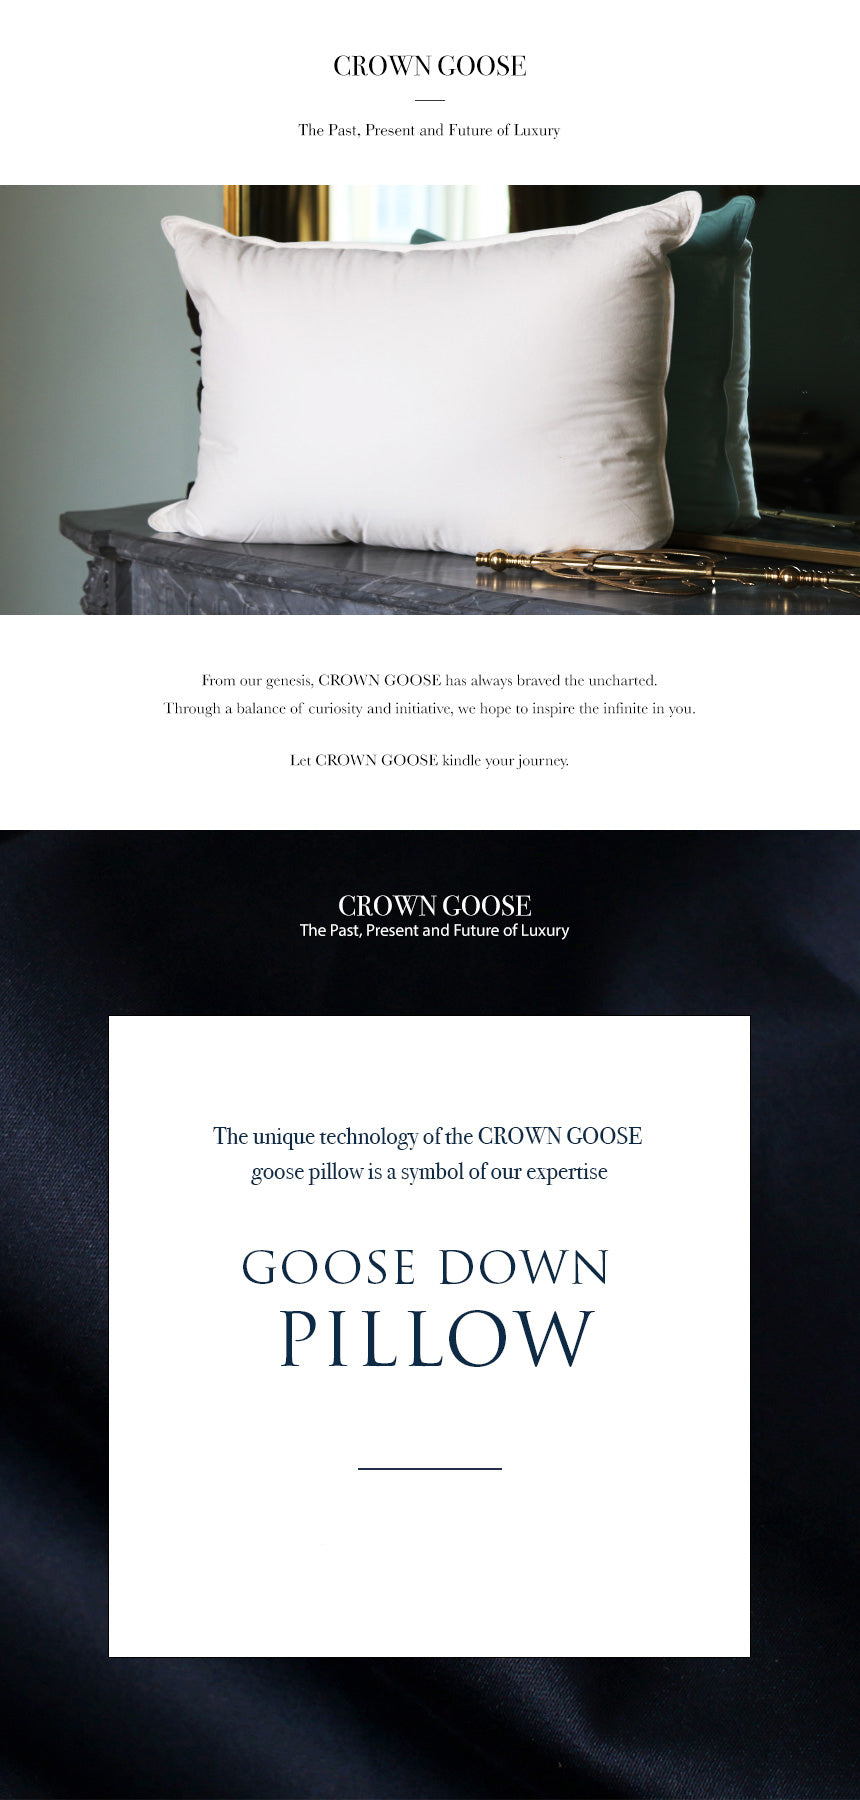 CrownGoose- Pillow 1